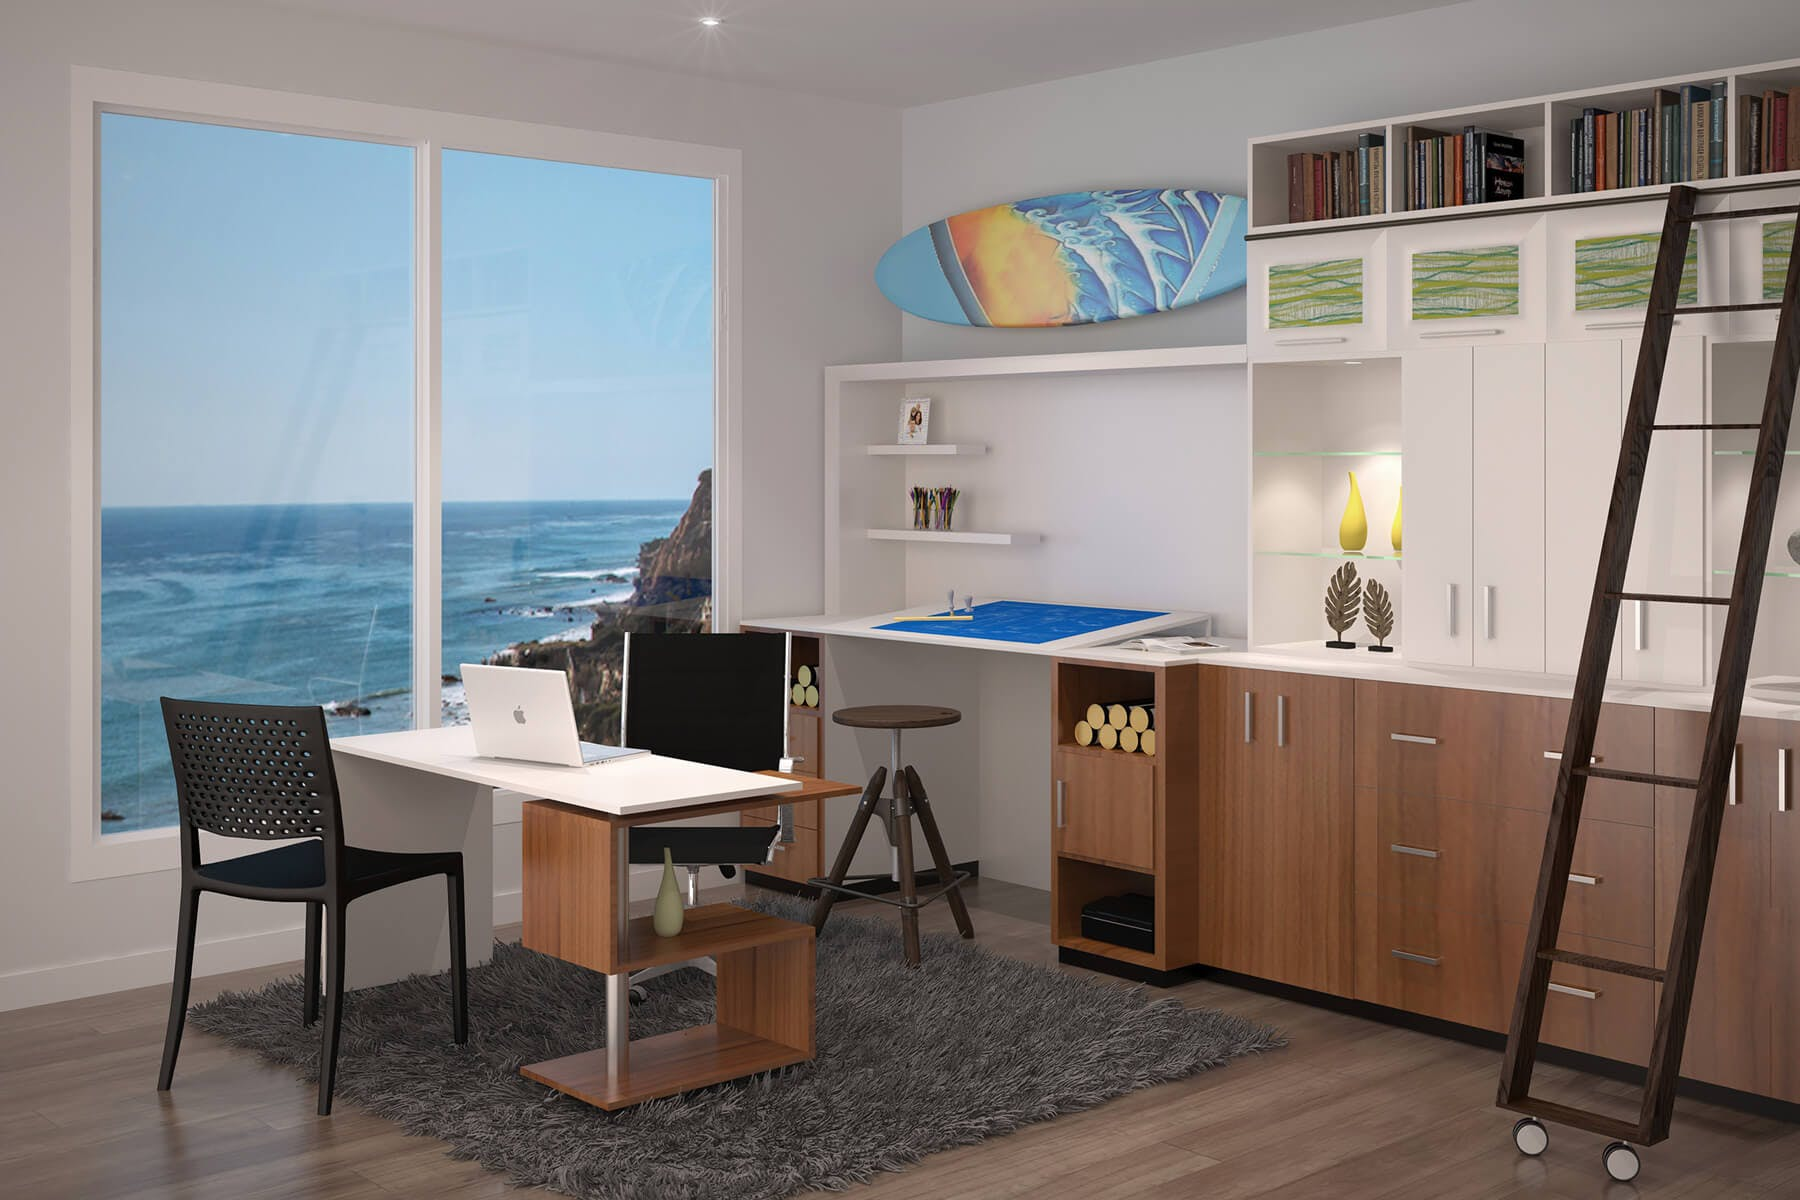 Custom office desks for home Rustic Architectual Custom Office And Wall Unit Home Office68 Closet Factory Custom Home Offices Office Builtin Design Closet Factory